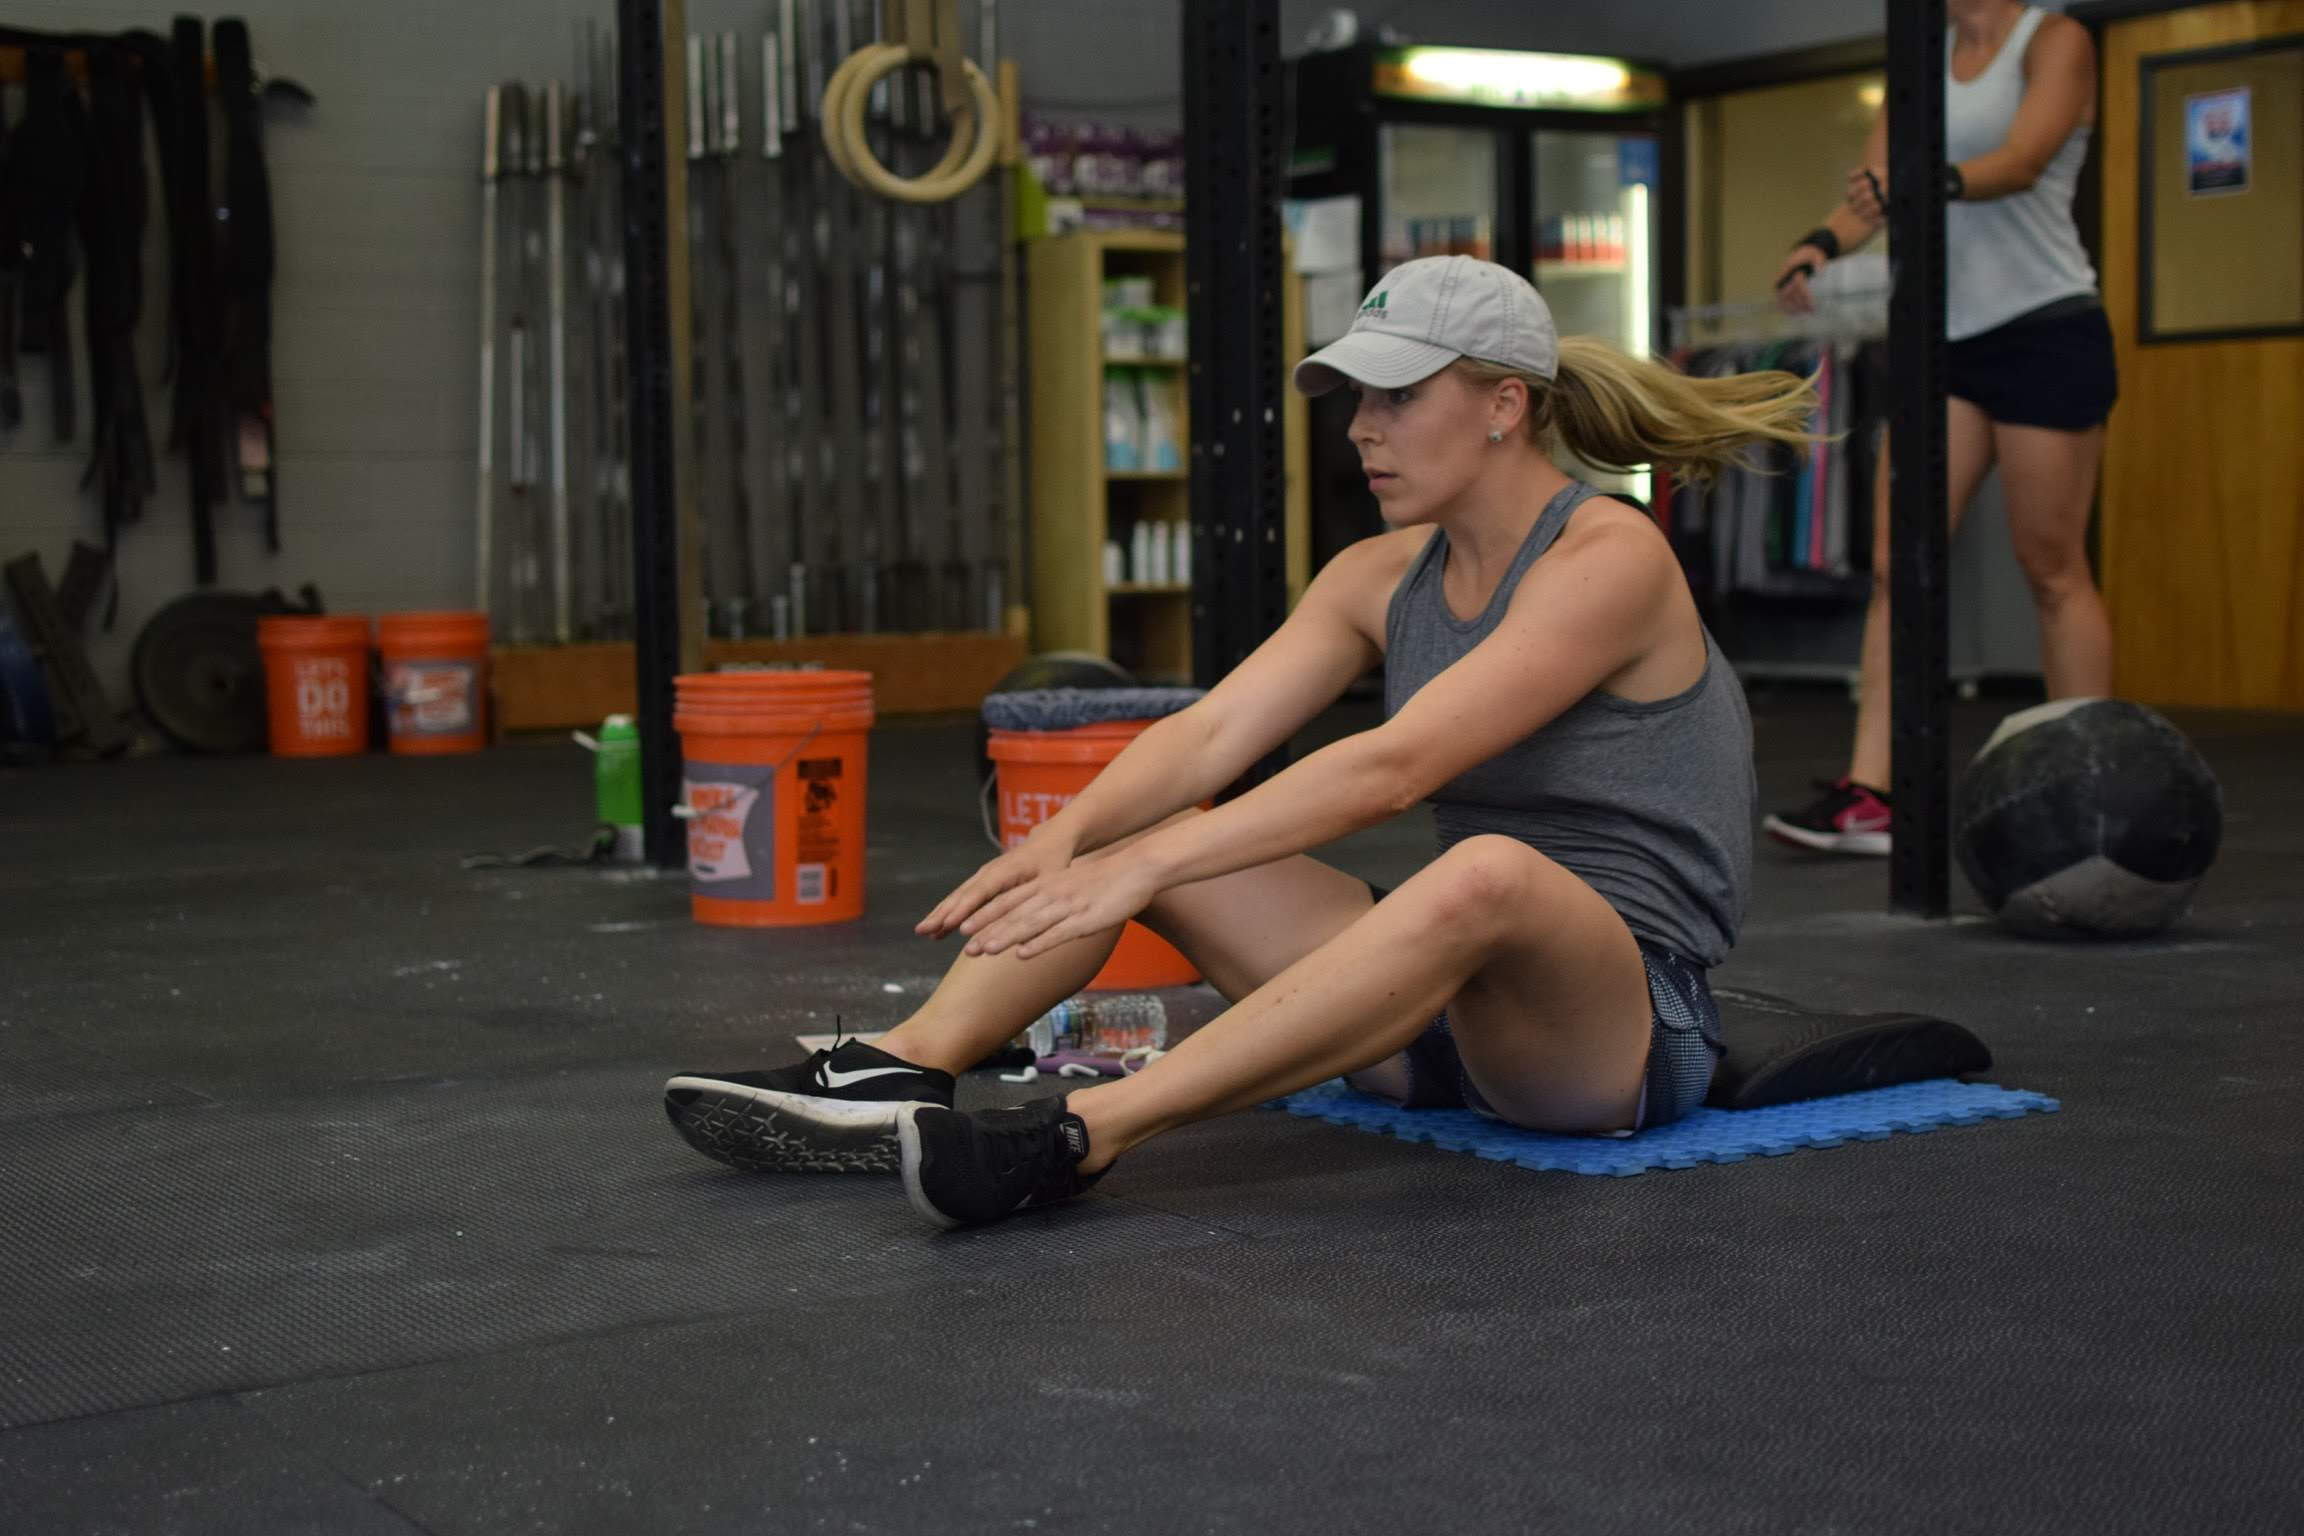 CFDV athlete and busy Mom Katelyn DeLiberty making time for her workouts.